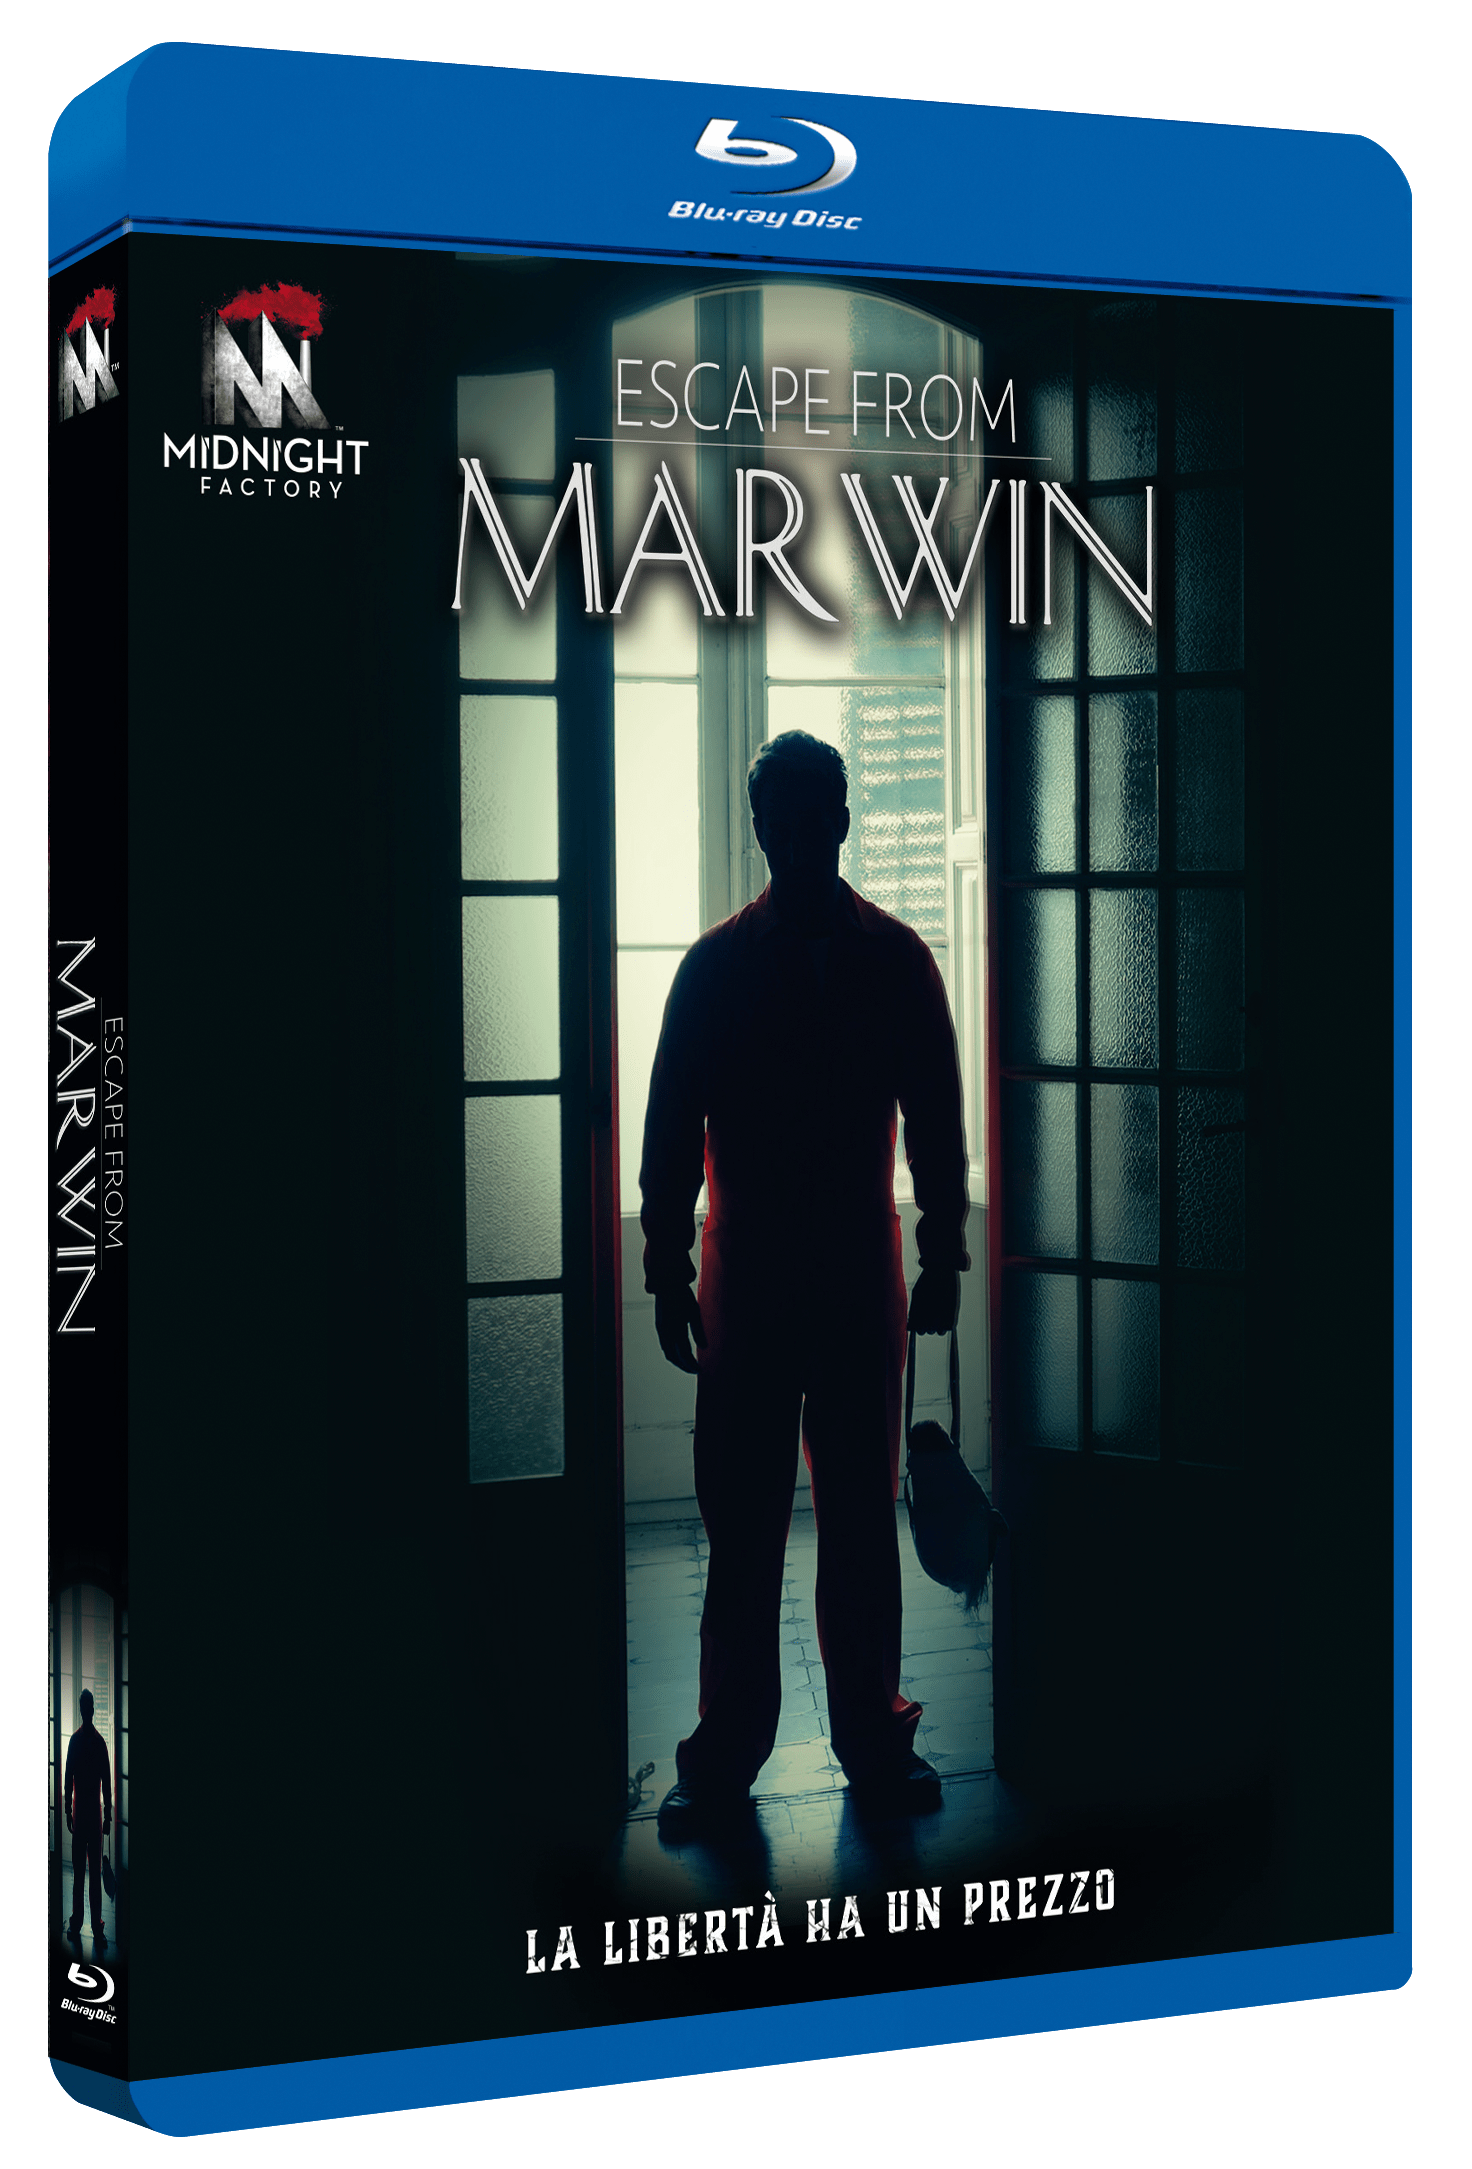 Escape from Marwin recensione Blu-ray